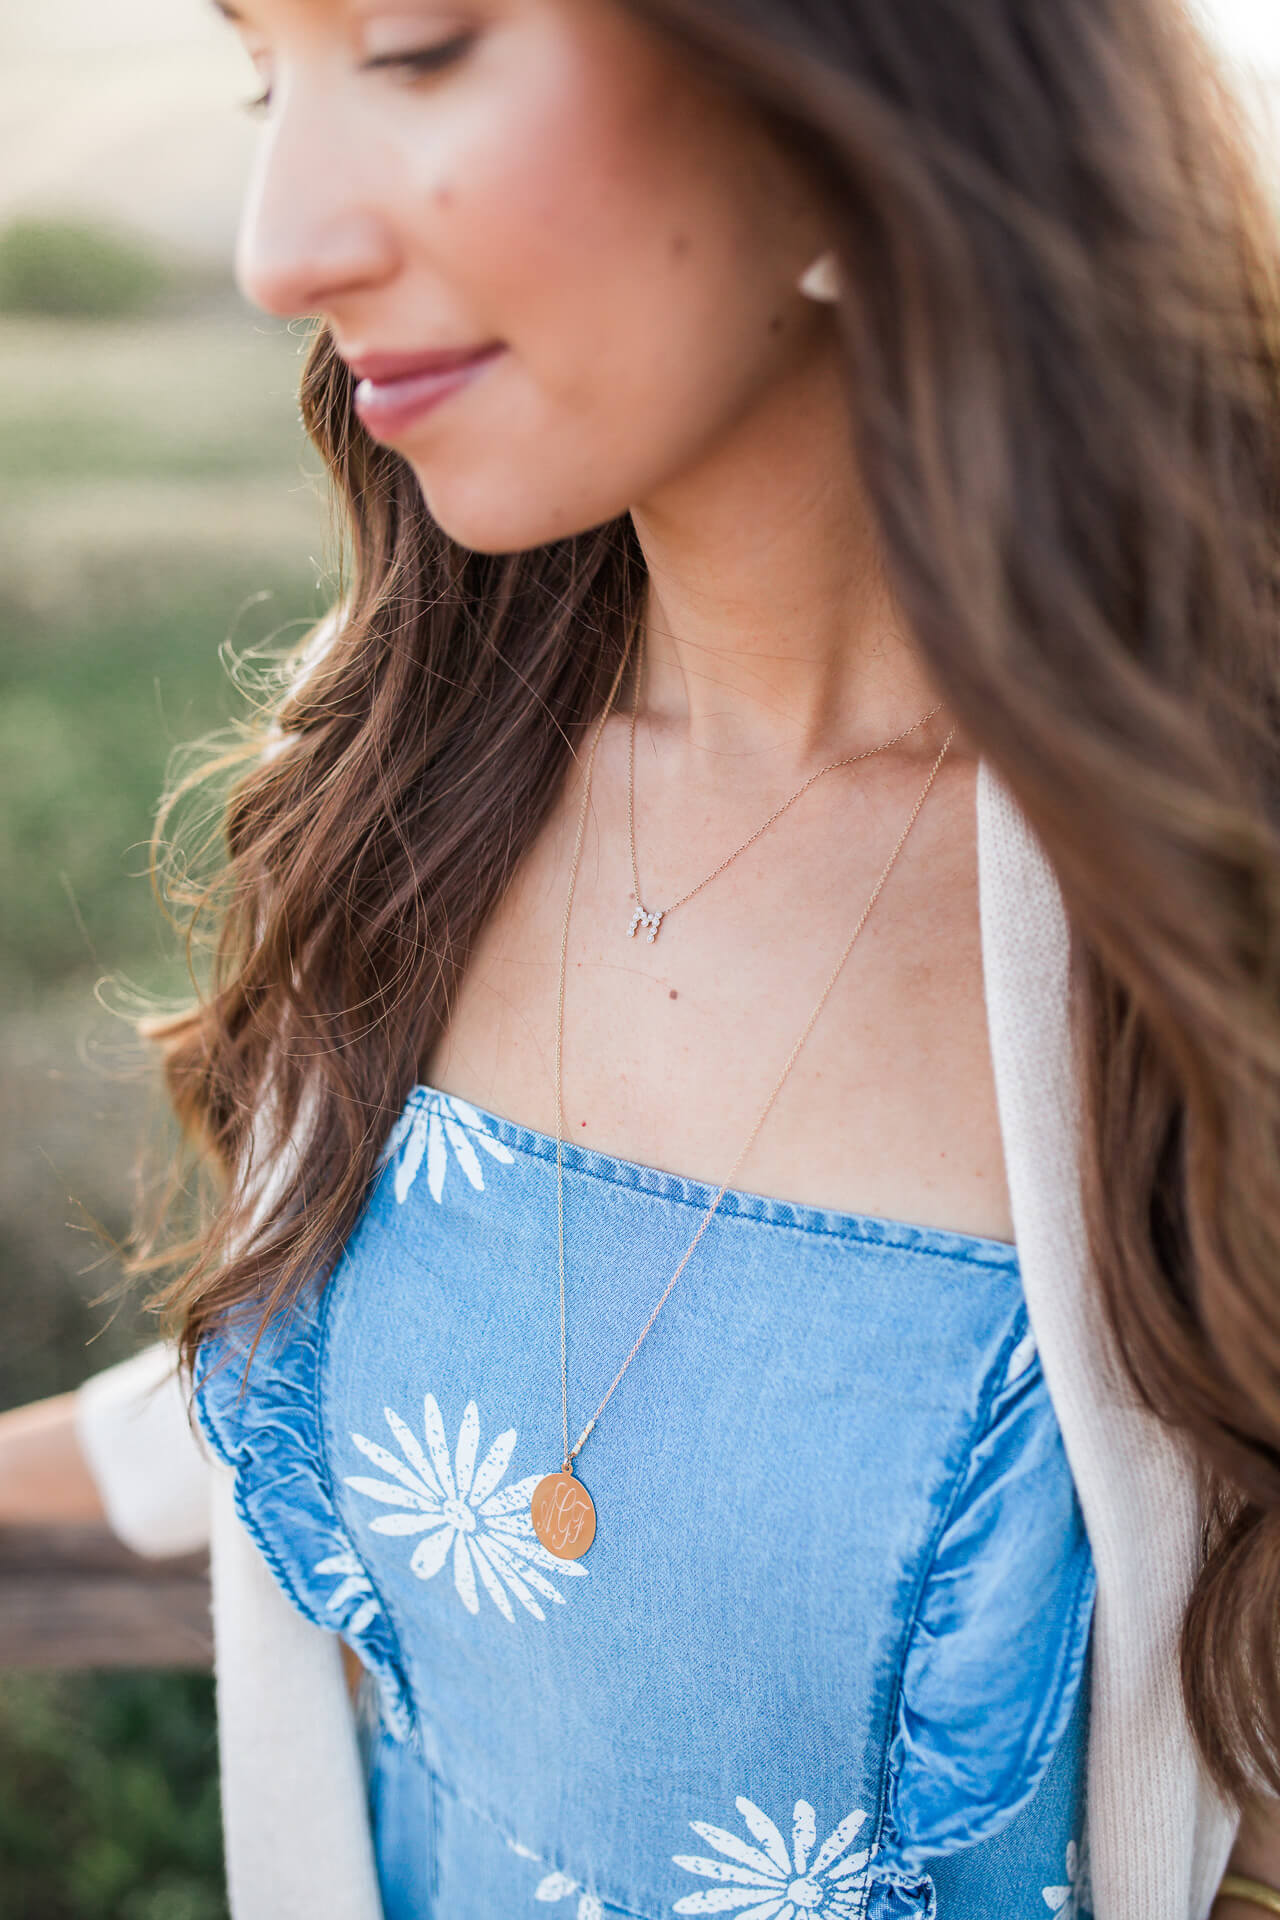 pretty necklace details - would be a great gift idea for Mother's Day